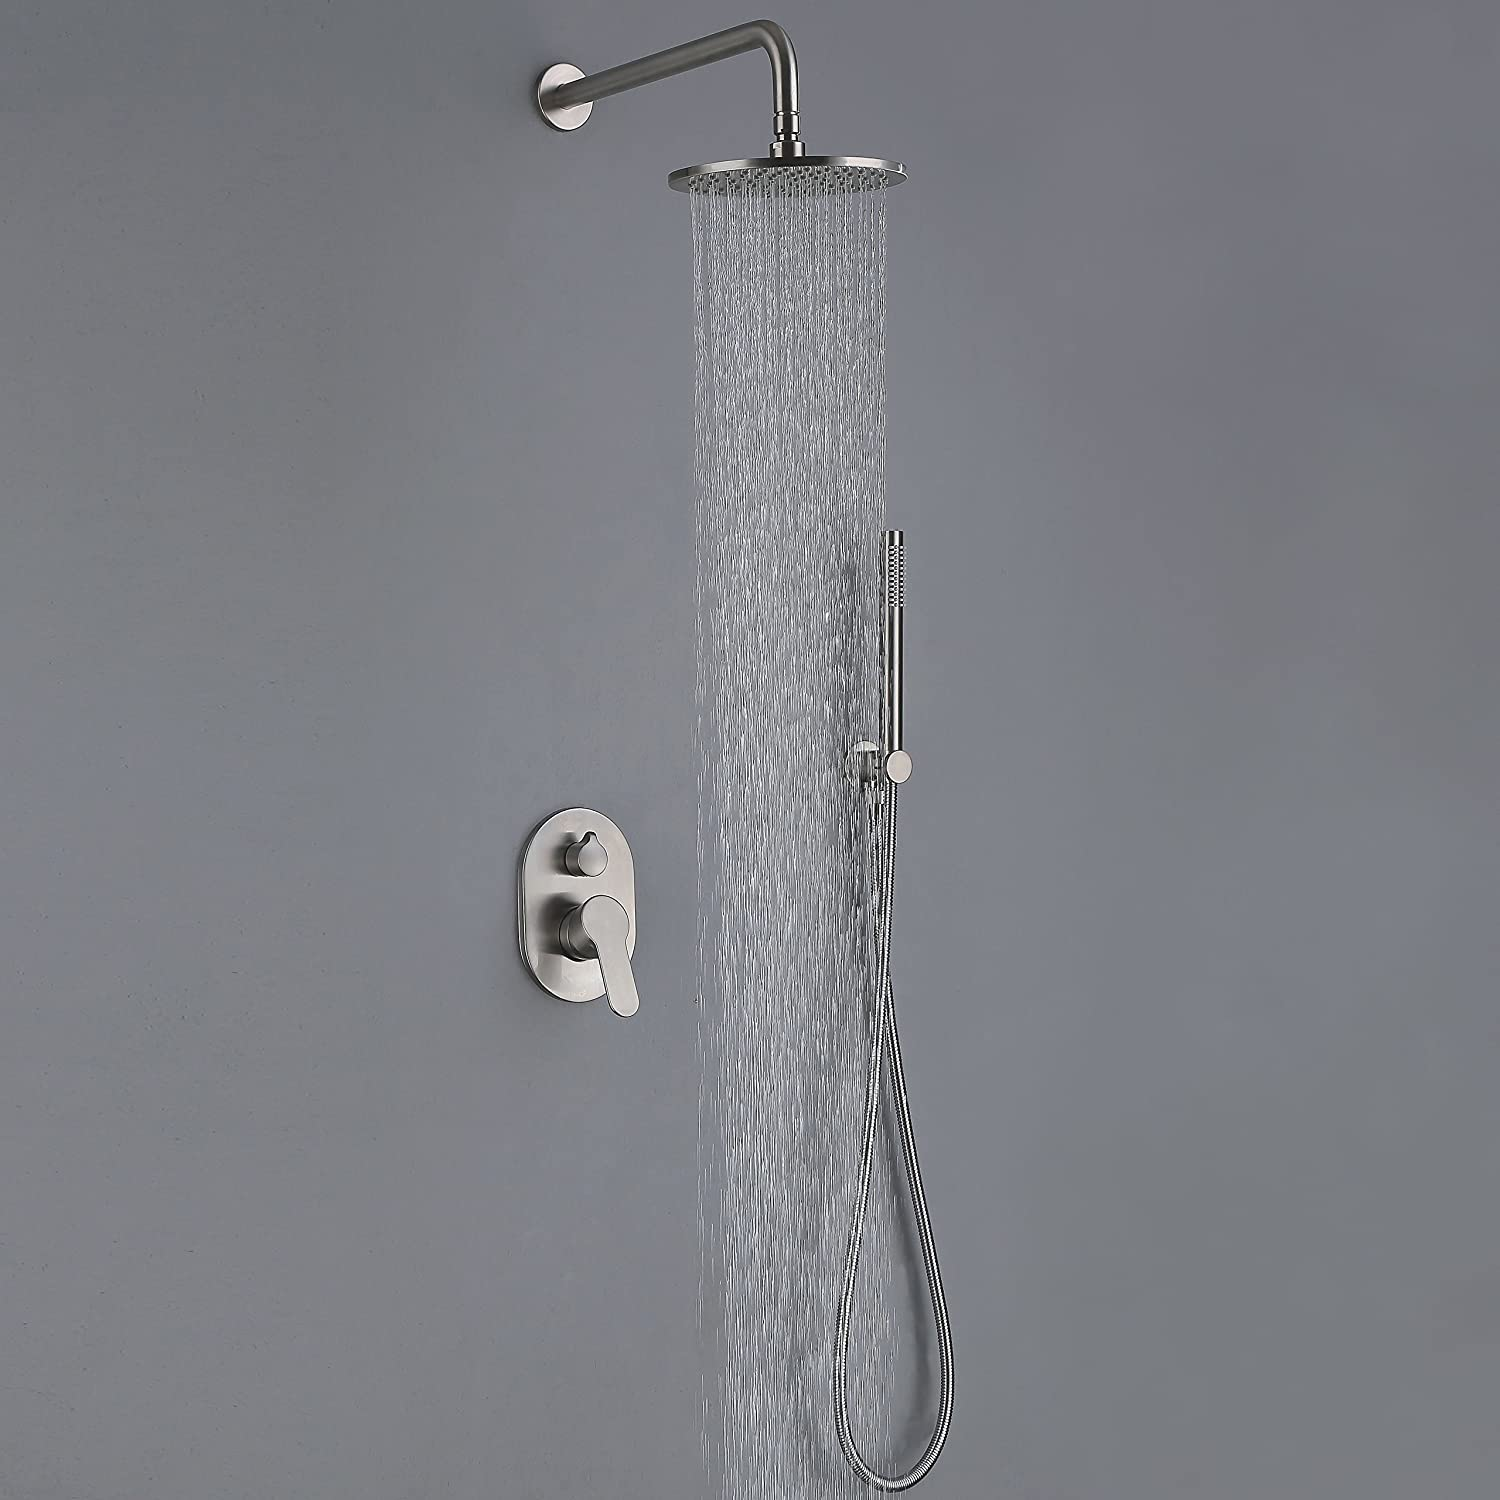 Shower Equipment Wall Mounted Rainfall 8 Shower Panel Dual Handle Bathroom Shower Faucet System With Handheld Shower Back To Search Resultshome Improvement